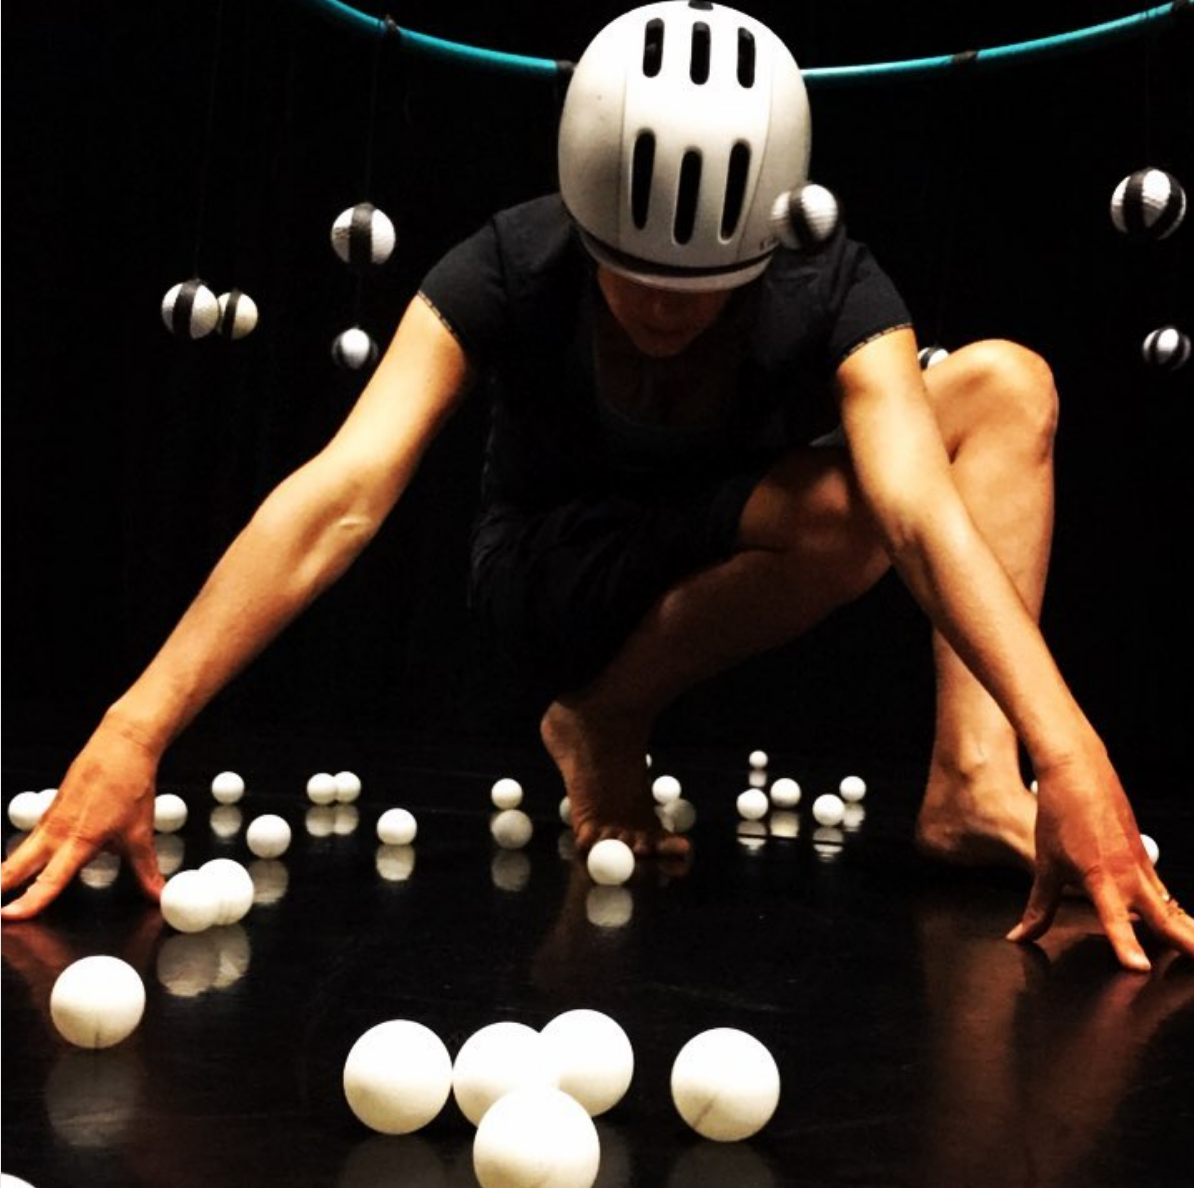 Concussion by Stacey Horton. Photo: Maureen Bradley